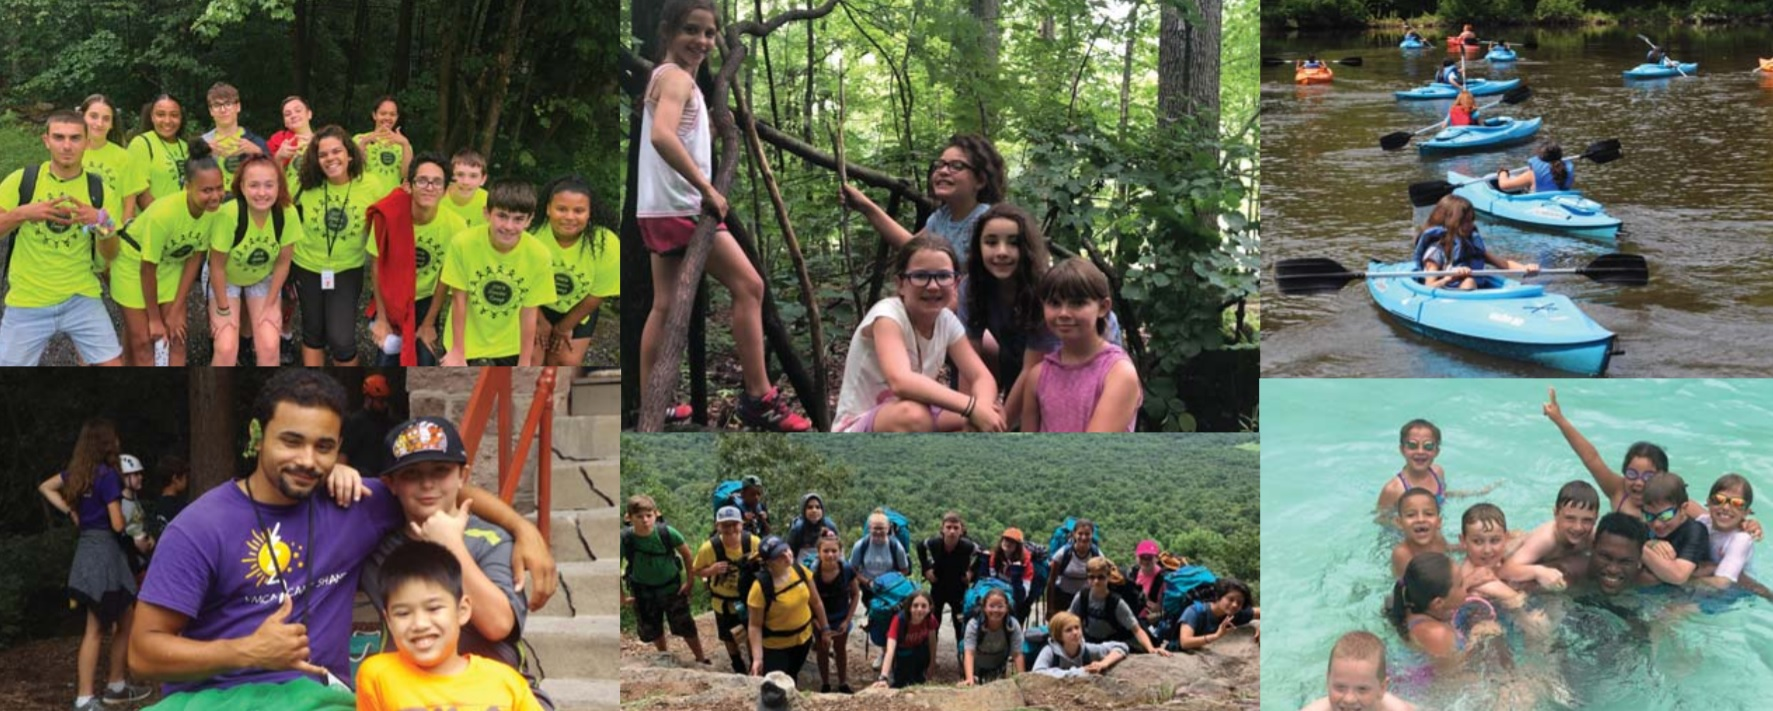 With Camp Shand sale, Lancaster Family YMCA takes another step toward sustainability